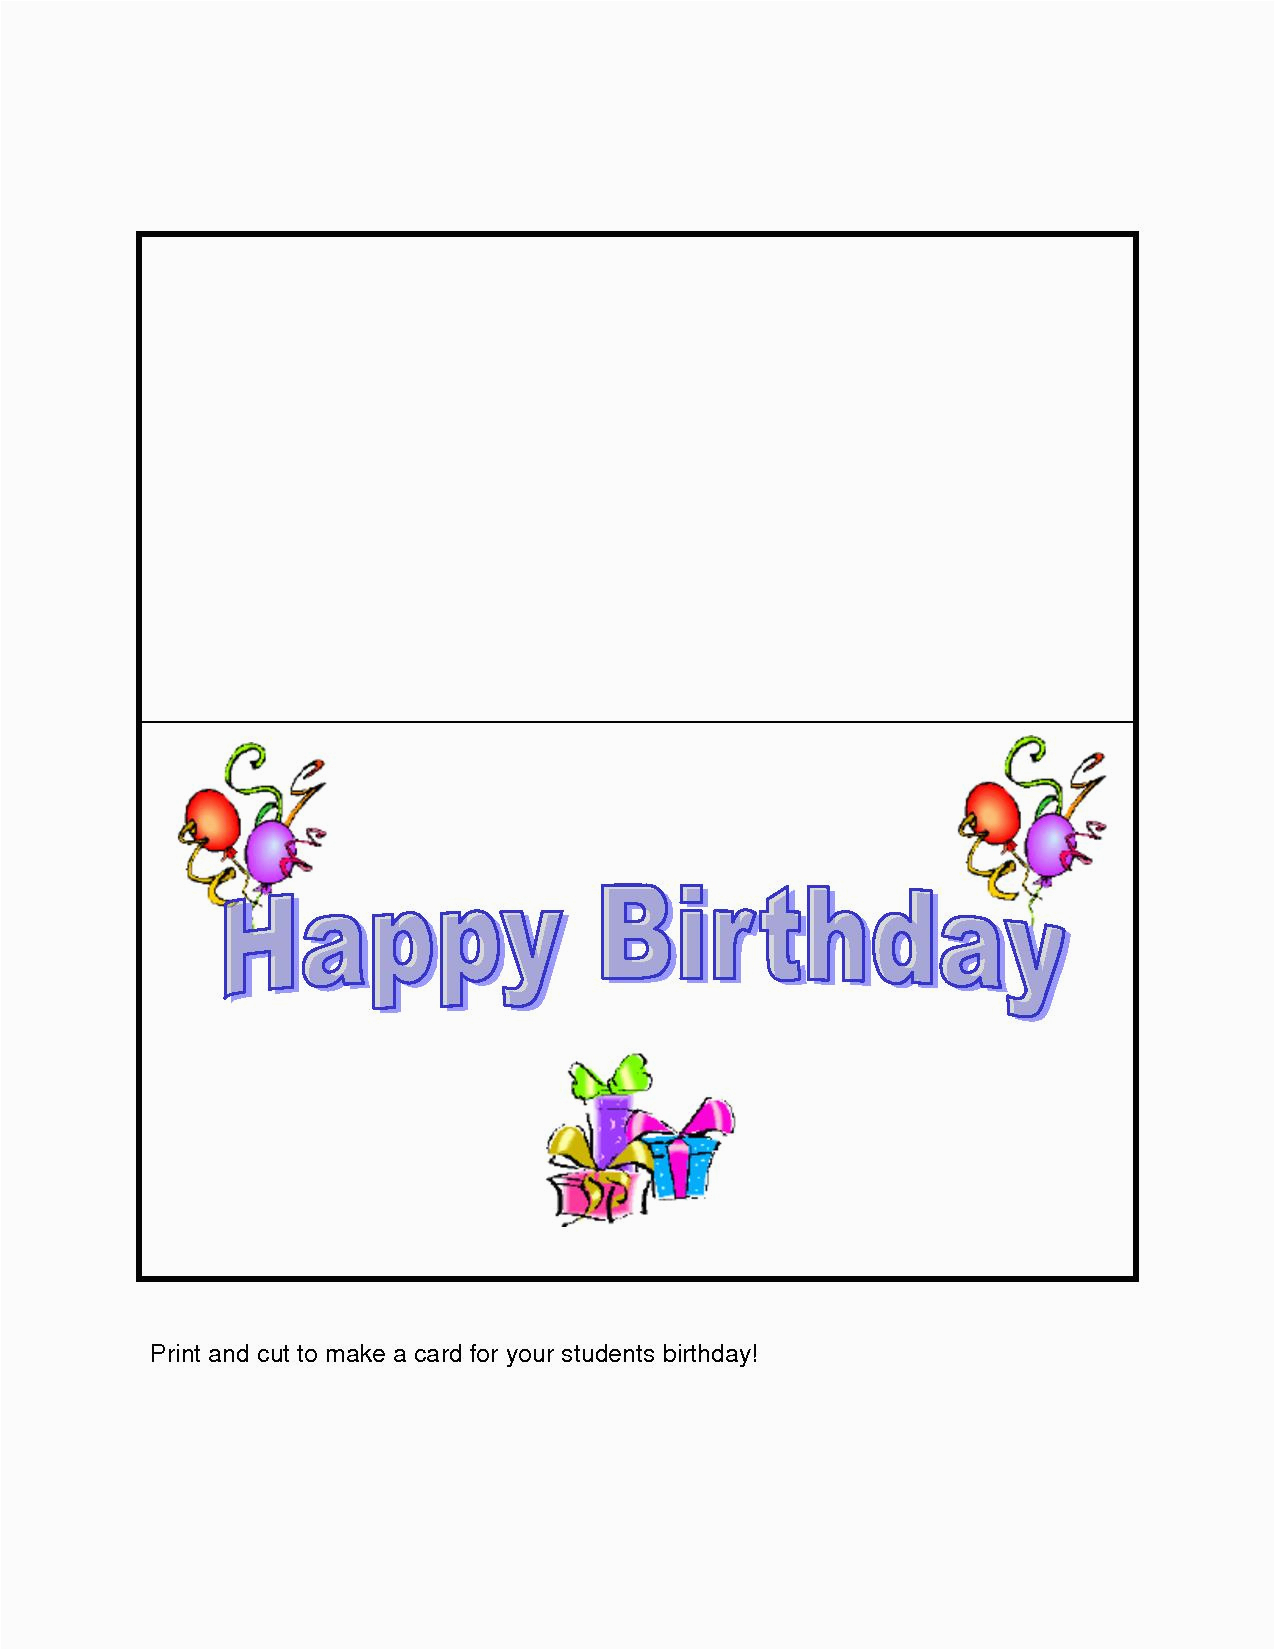 Make Your Own Birthday Cards Free And Print | Birthdaybuzz - Customized Birthday Cards Free Printable